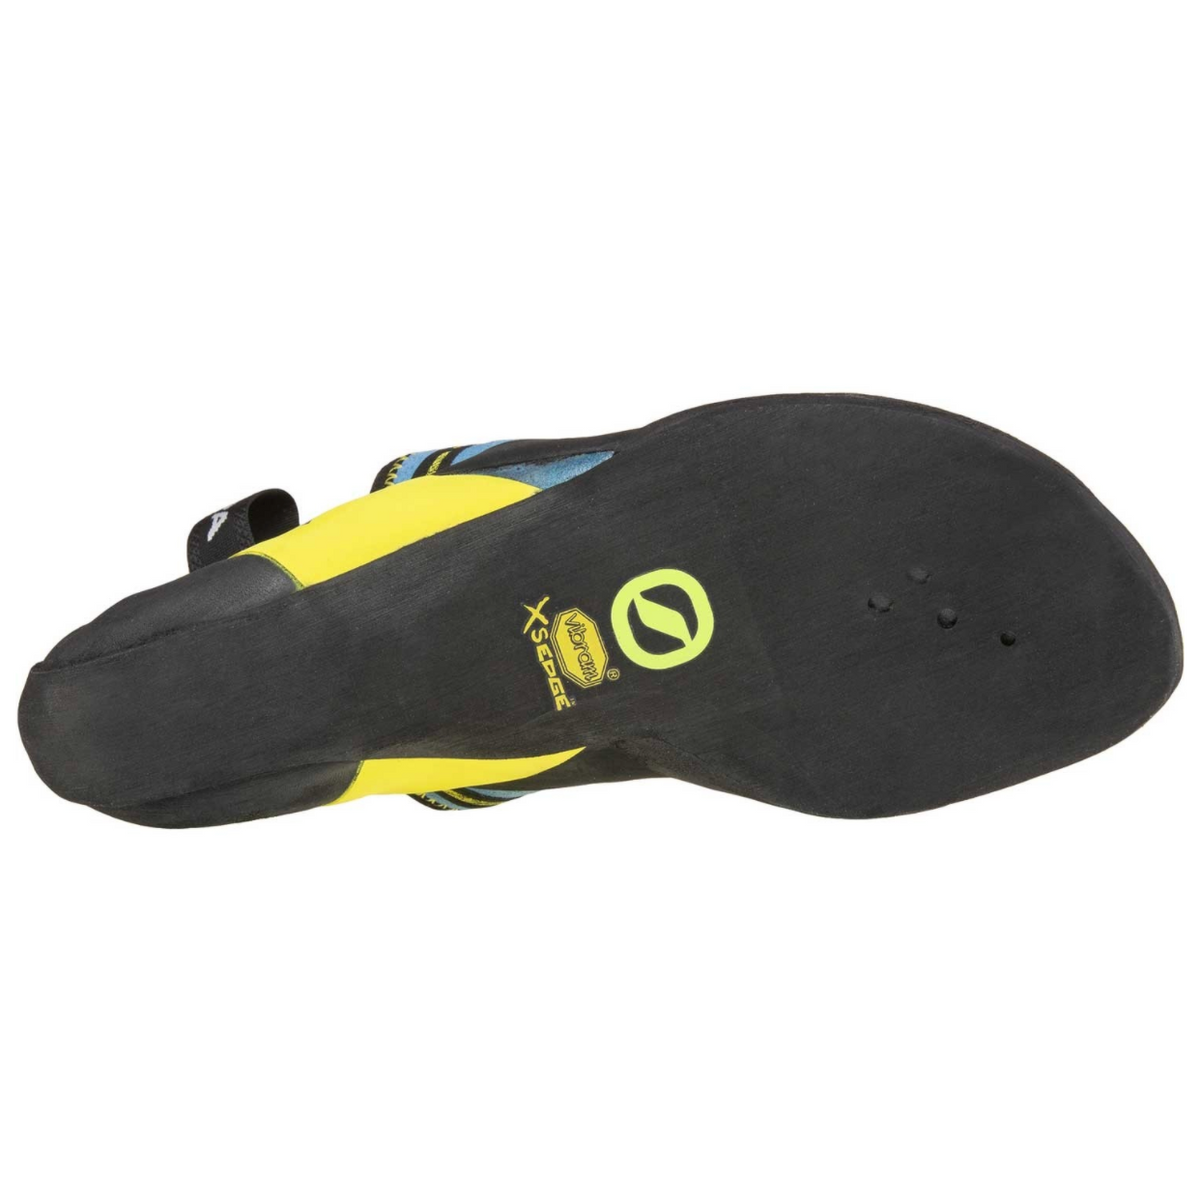 Scarpa Vapour Lace climbing shoe in blue and yellow sole